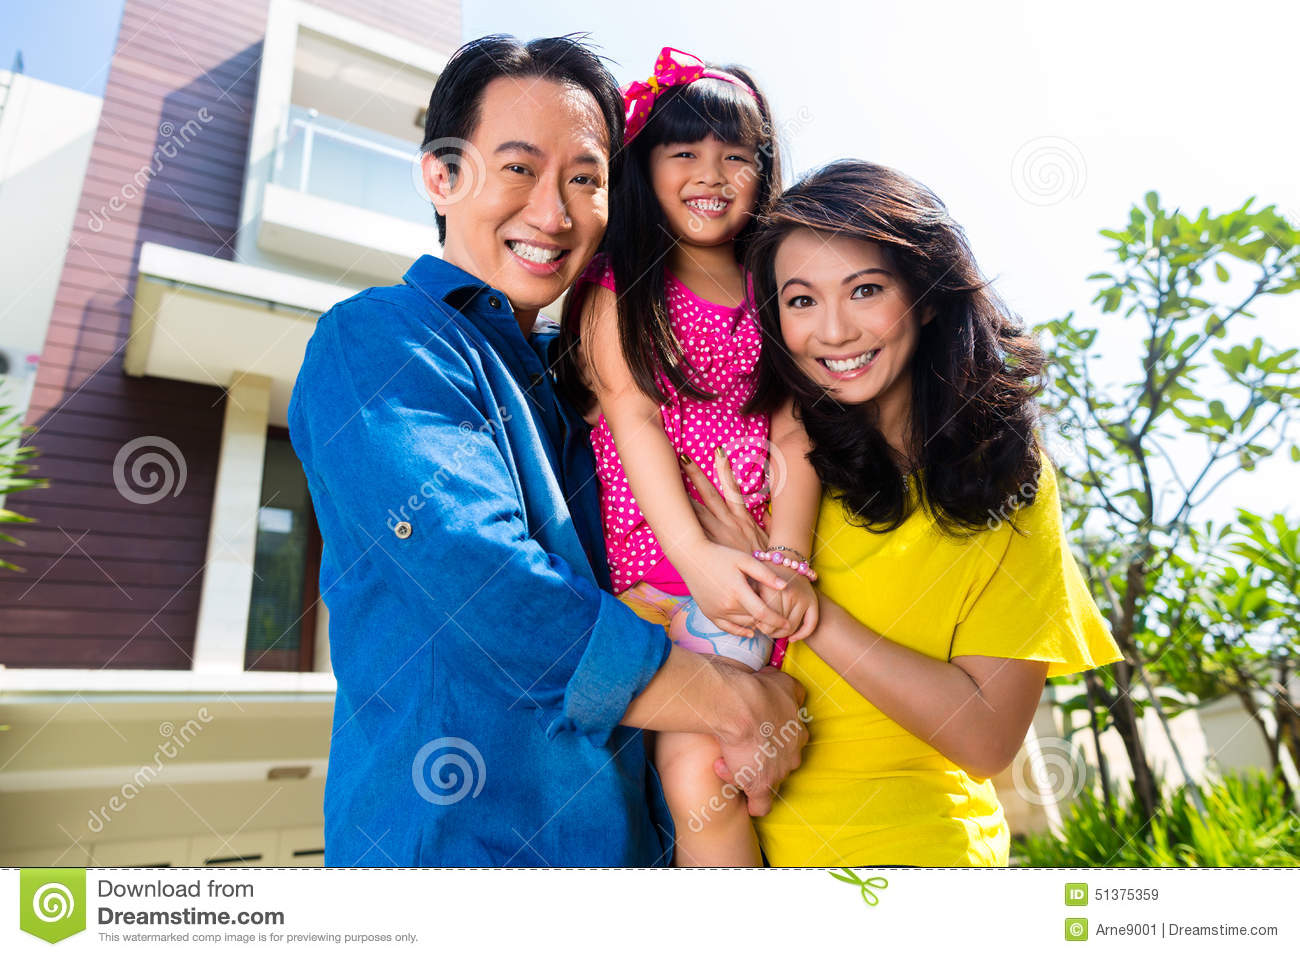 Asian Family With Child Standing - 187.0KB